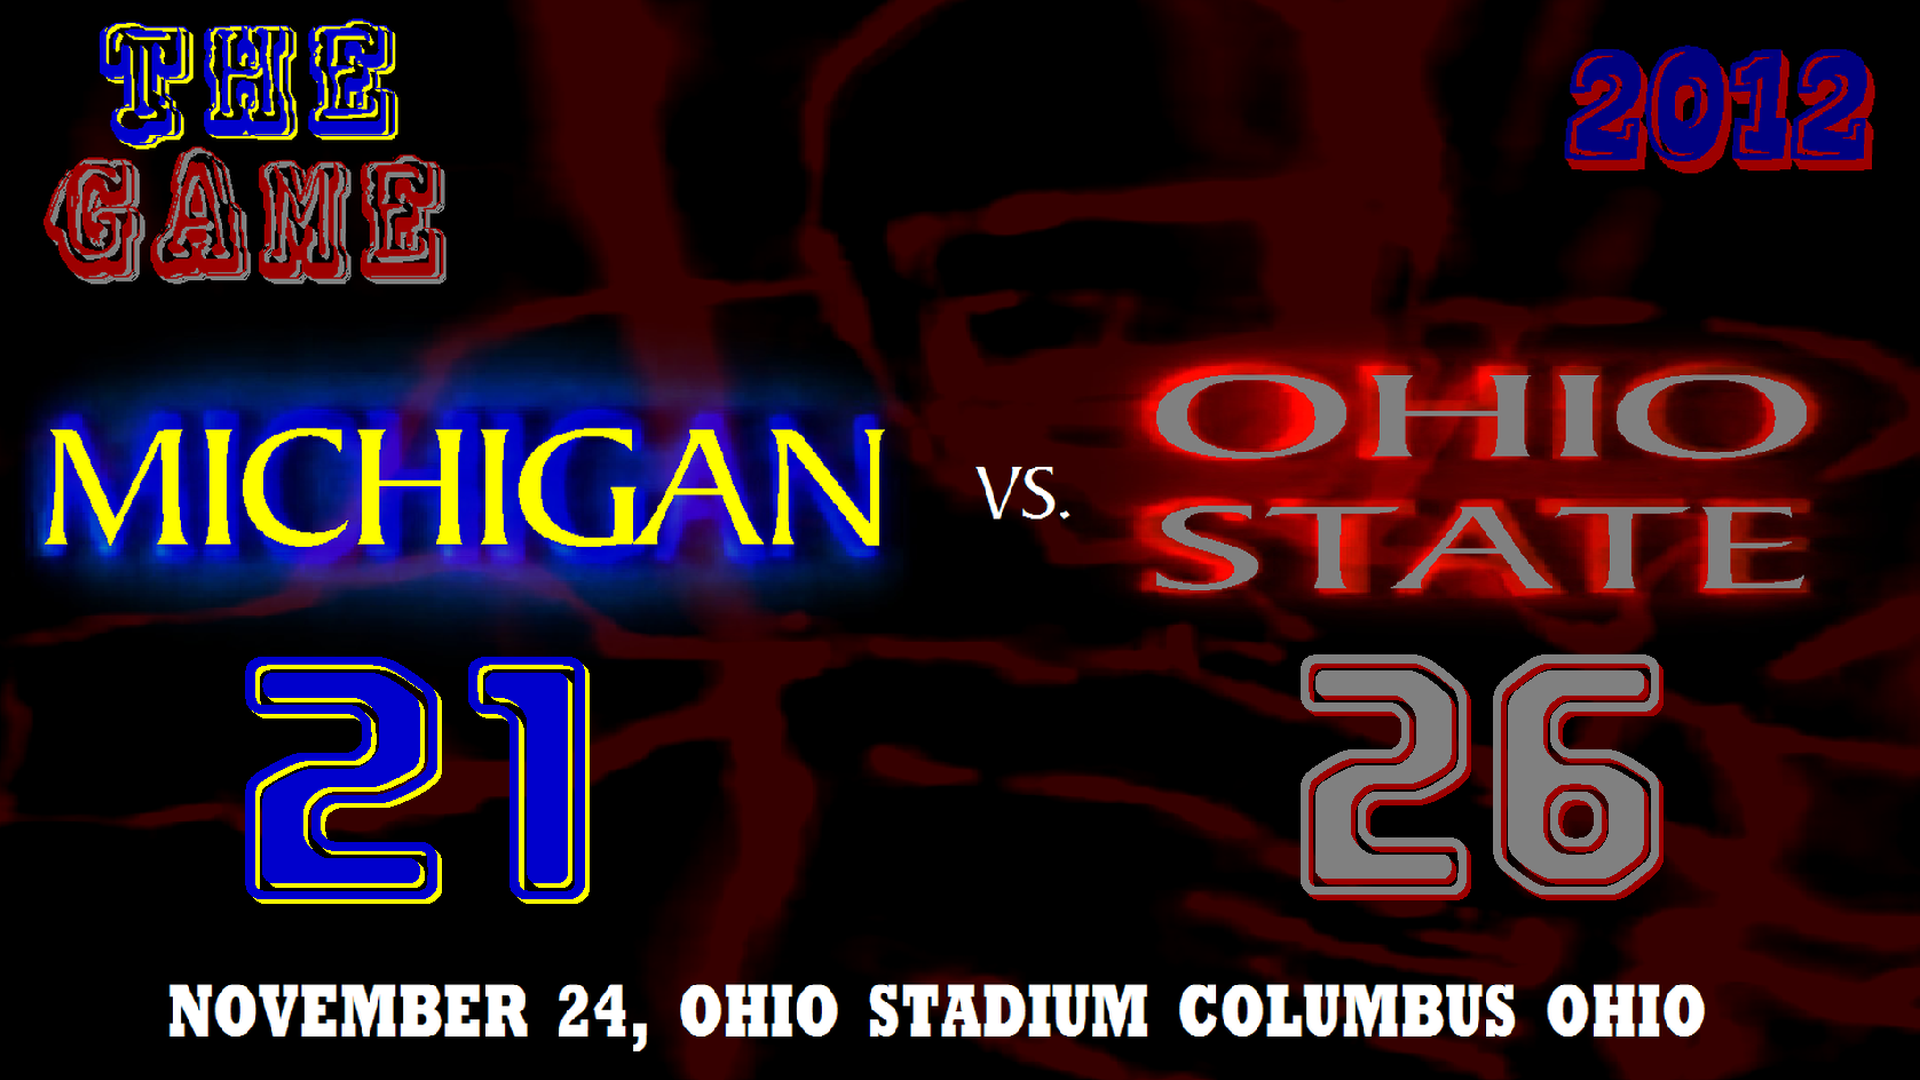 Ohio State Football THE GAME 2012 MICHIGAN 21 VS OHIO STATE 26 by 1920x1080